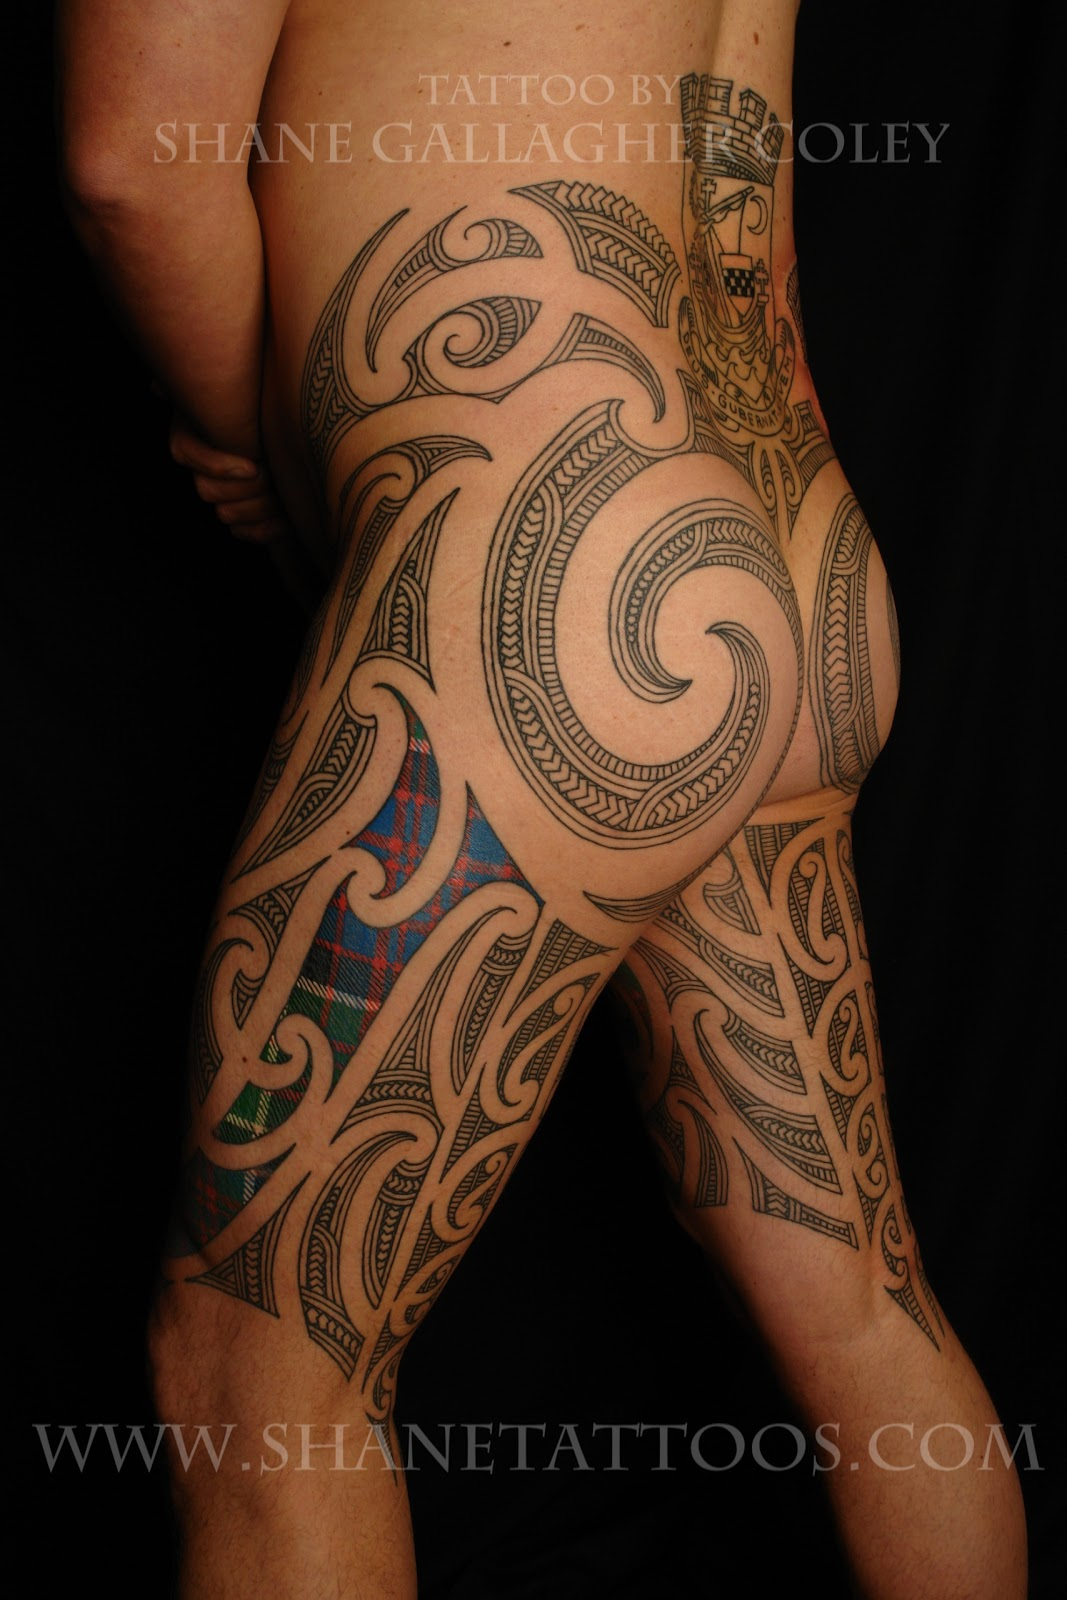 SHANE TATTOOS: Puhoro: Maori/Scottish On William